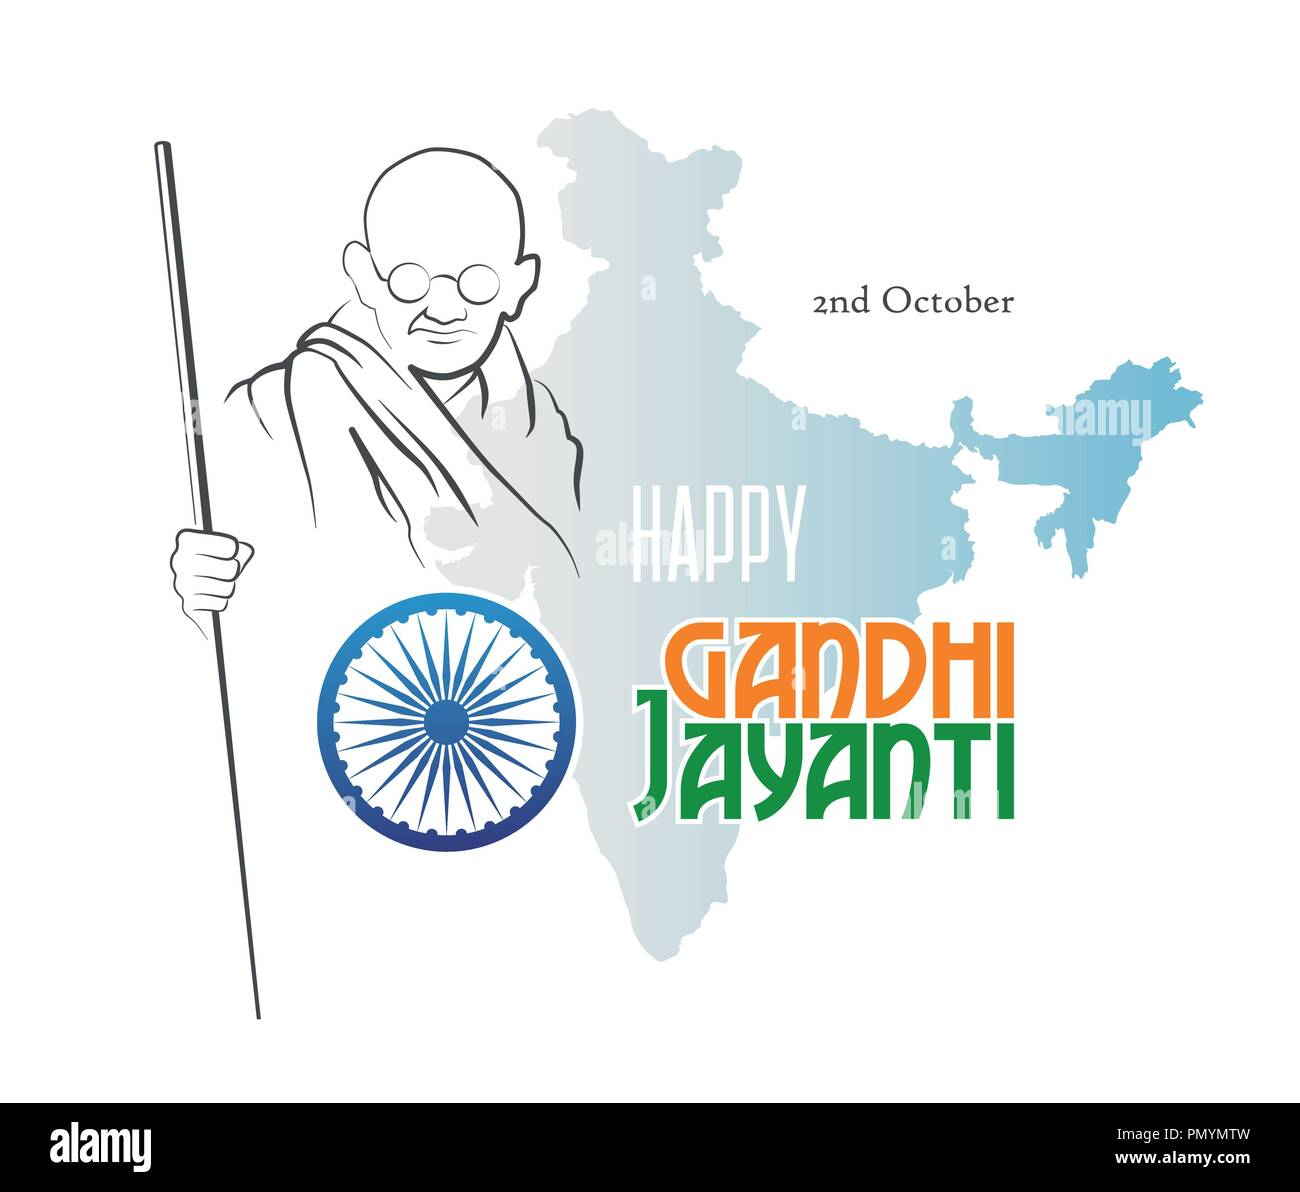 October 2. Happy Gandhi Jayanti. Abstract sketch of Mahatma Gandhi with Ashoka Chakra on the silhouette of the map of India. Vector illustration. - Stock Image